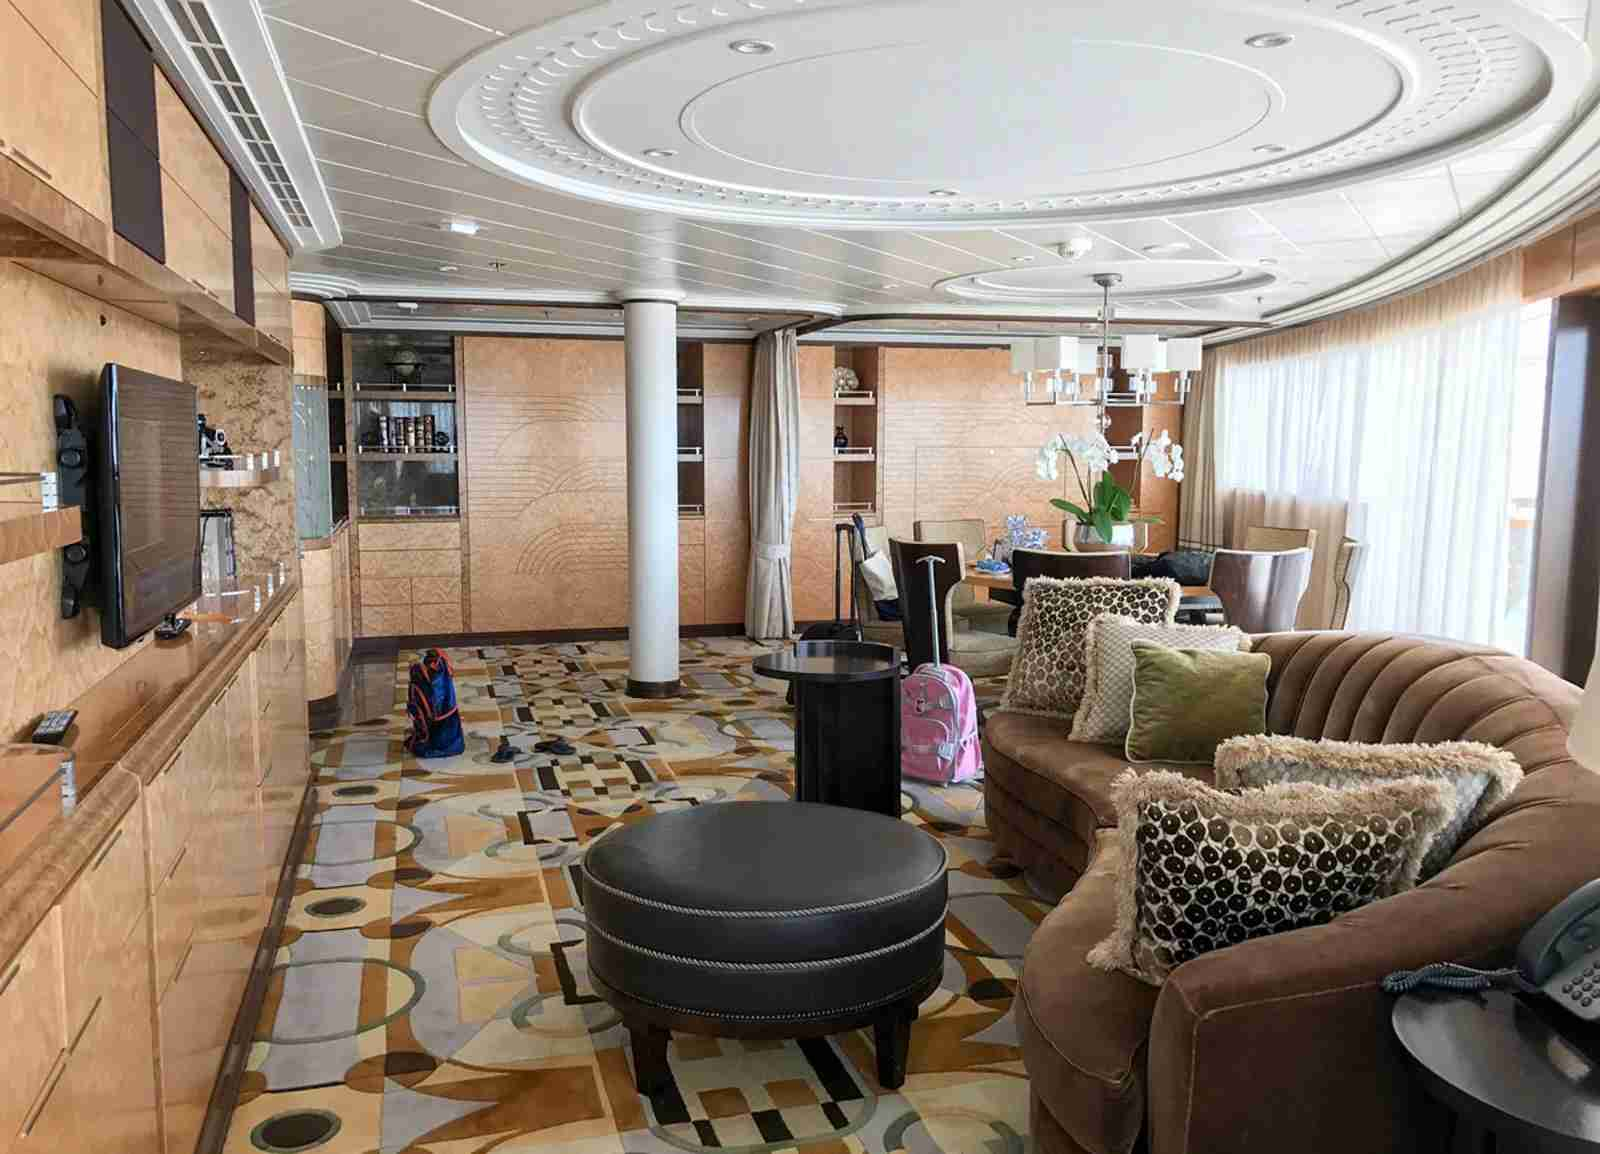 The Grand Suite aboard Royal Caribbean